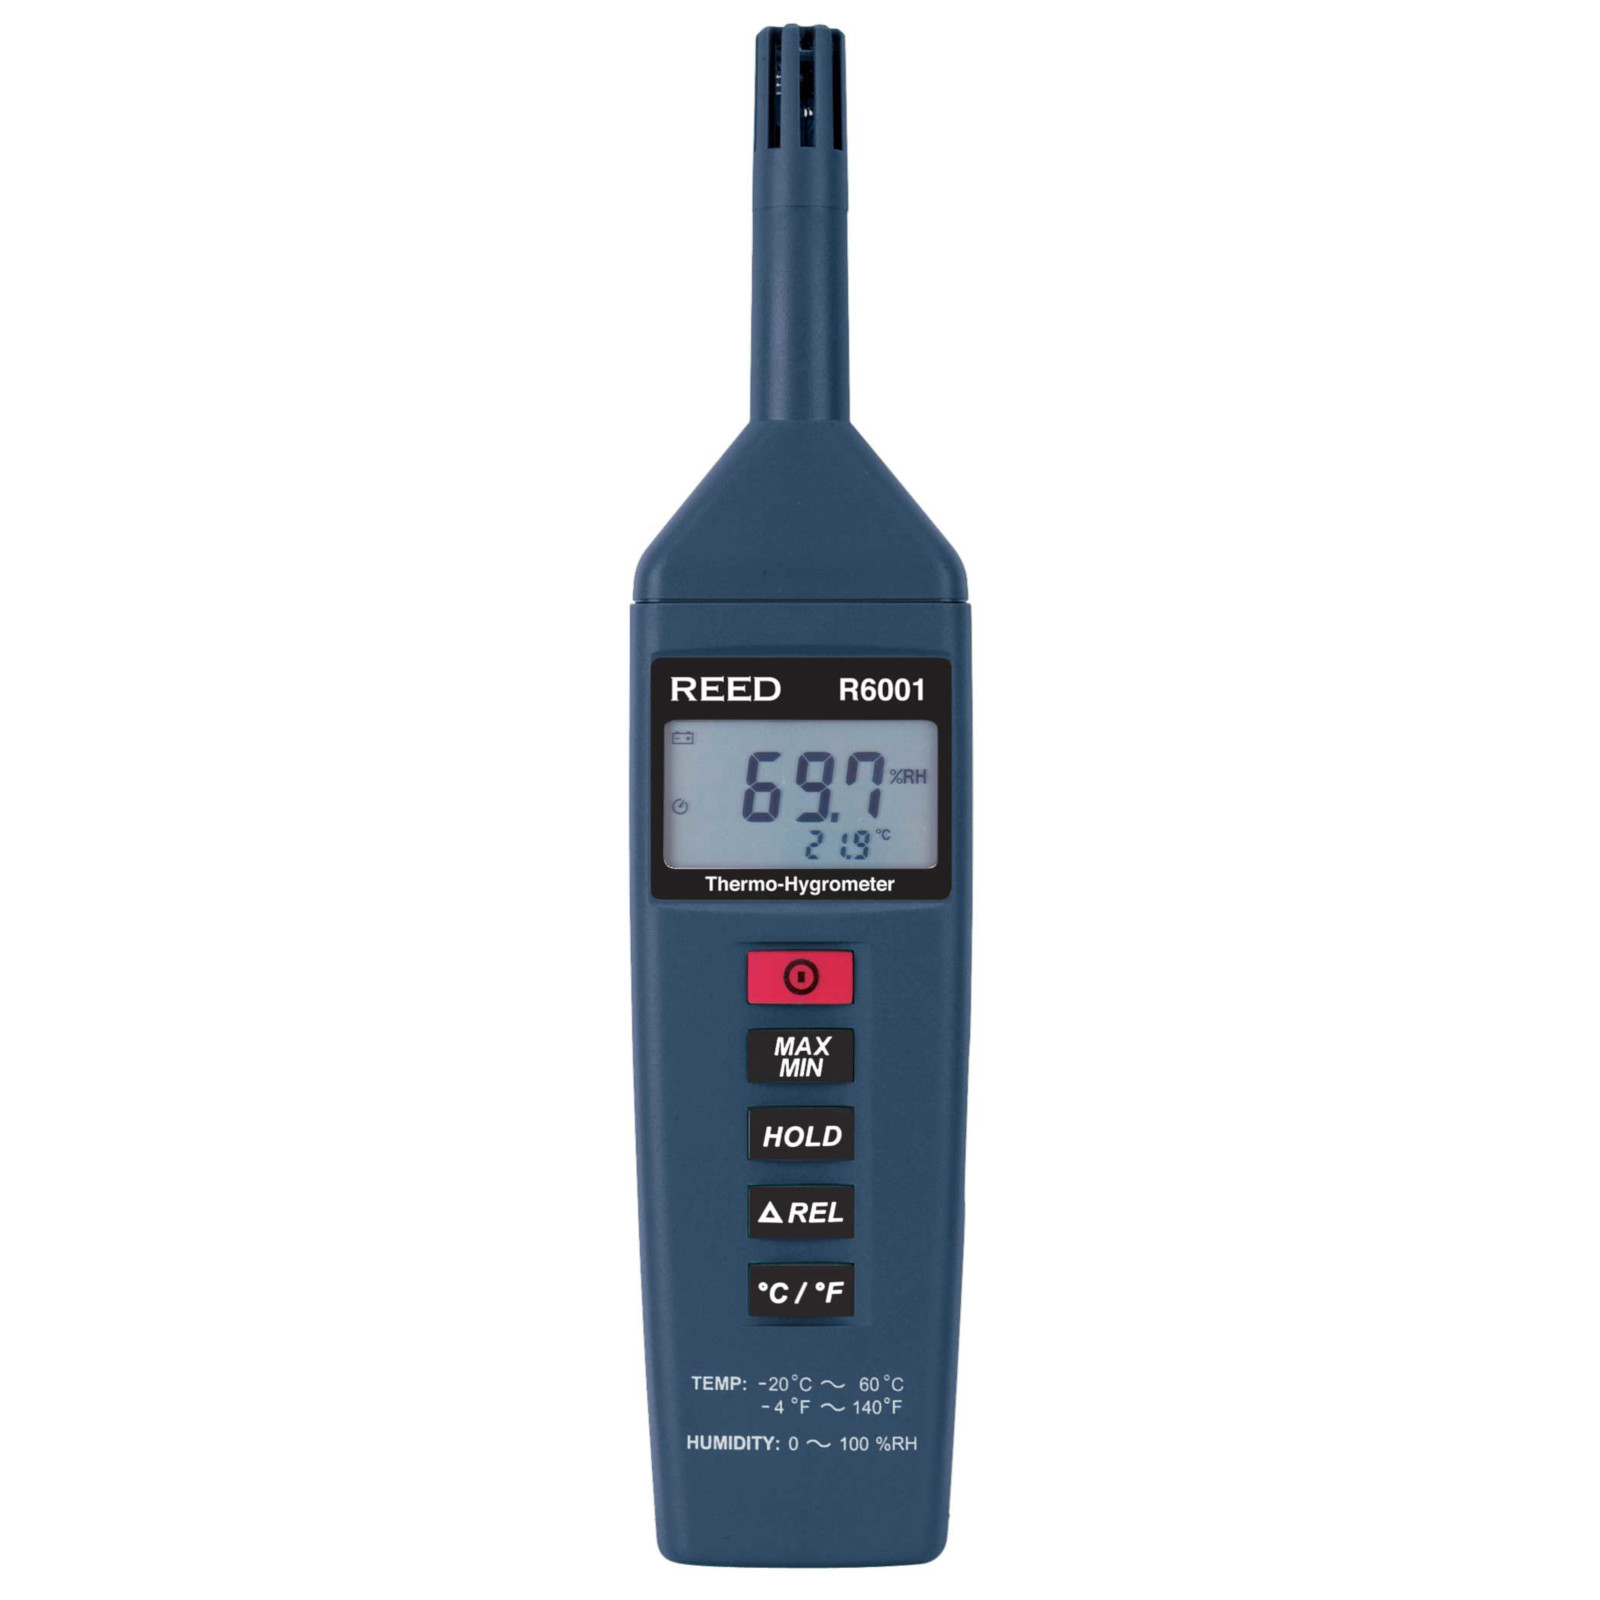 Reed Instruments R6001 Thermo Hygrometer with High Sampling Rate